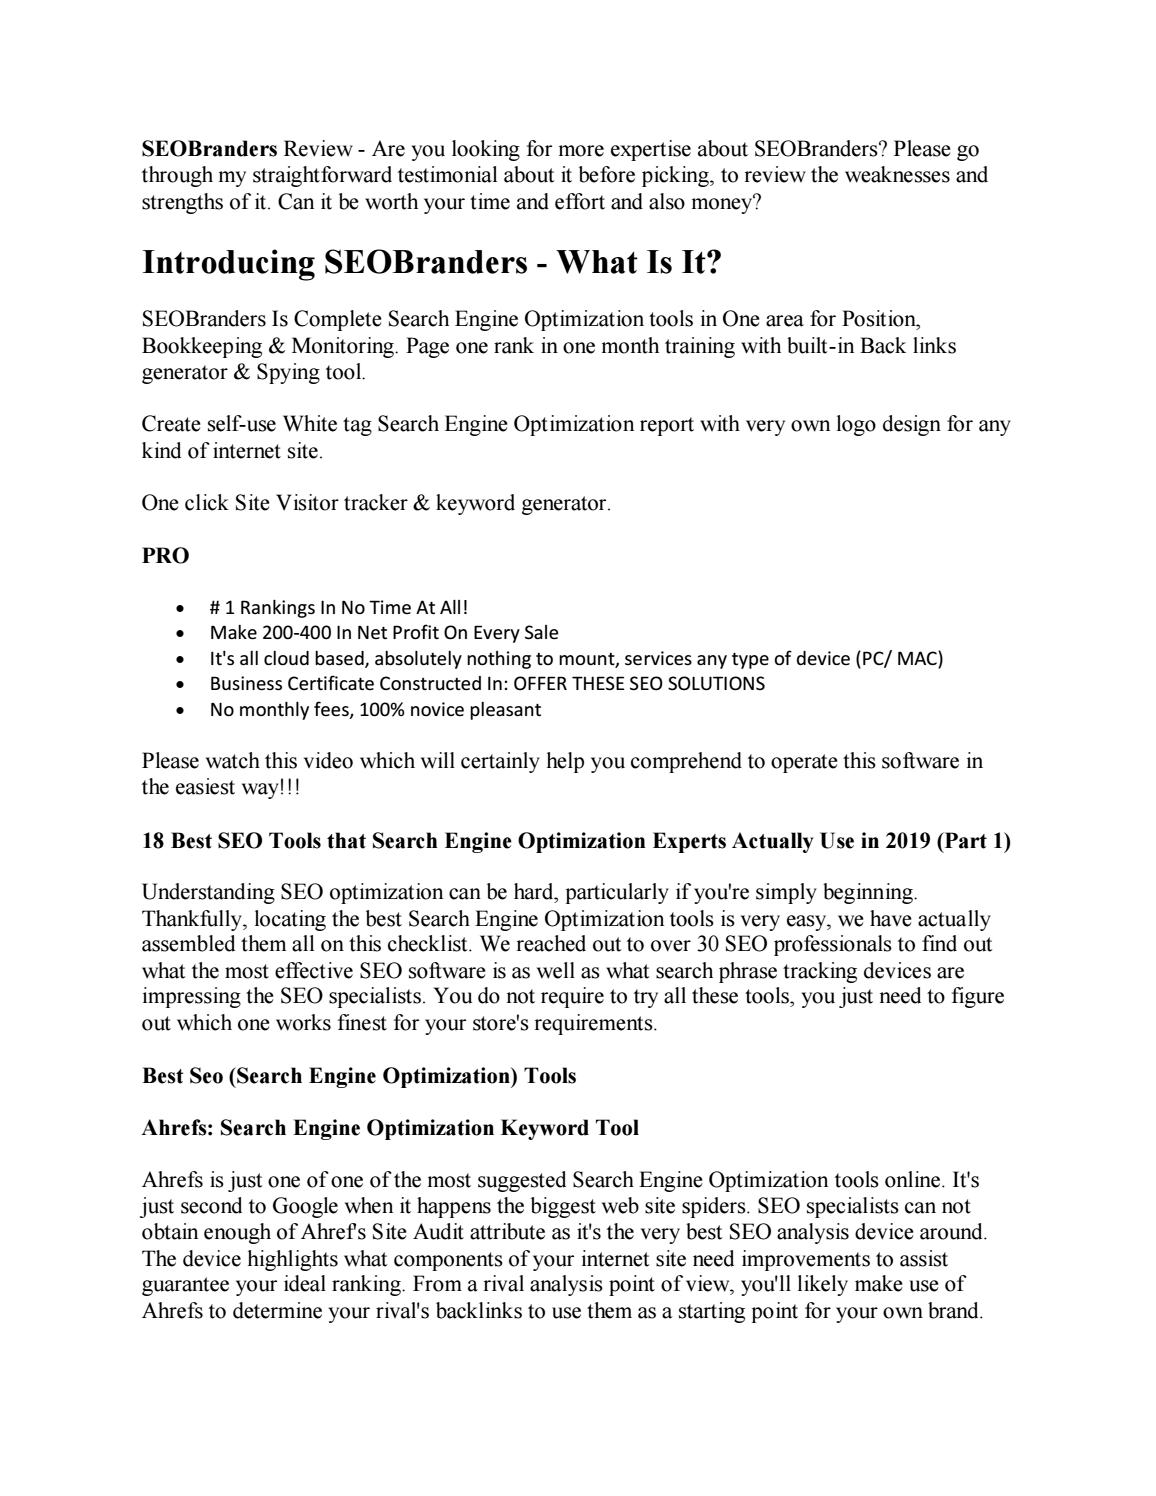 SEOBranders Review Should We Grab It by richardlarue - issuu